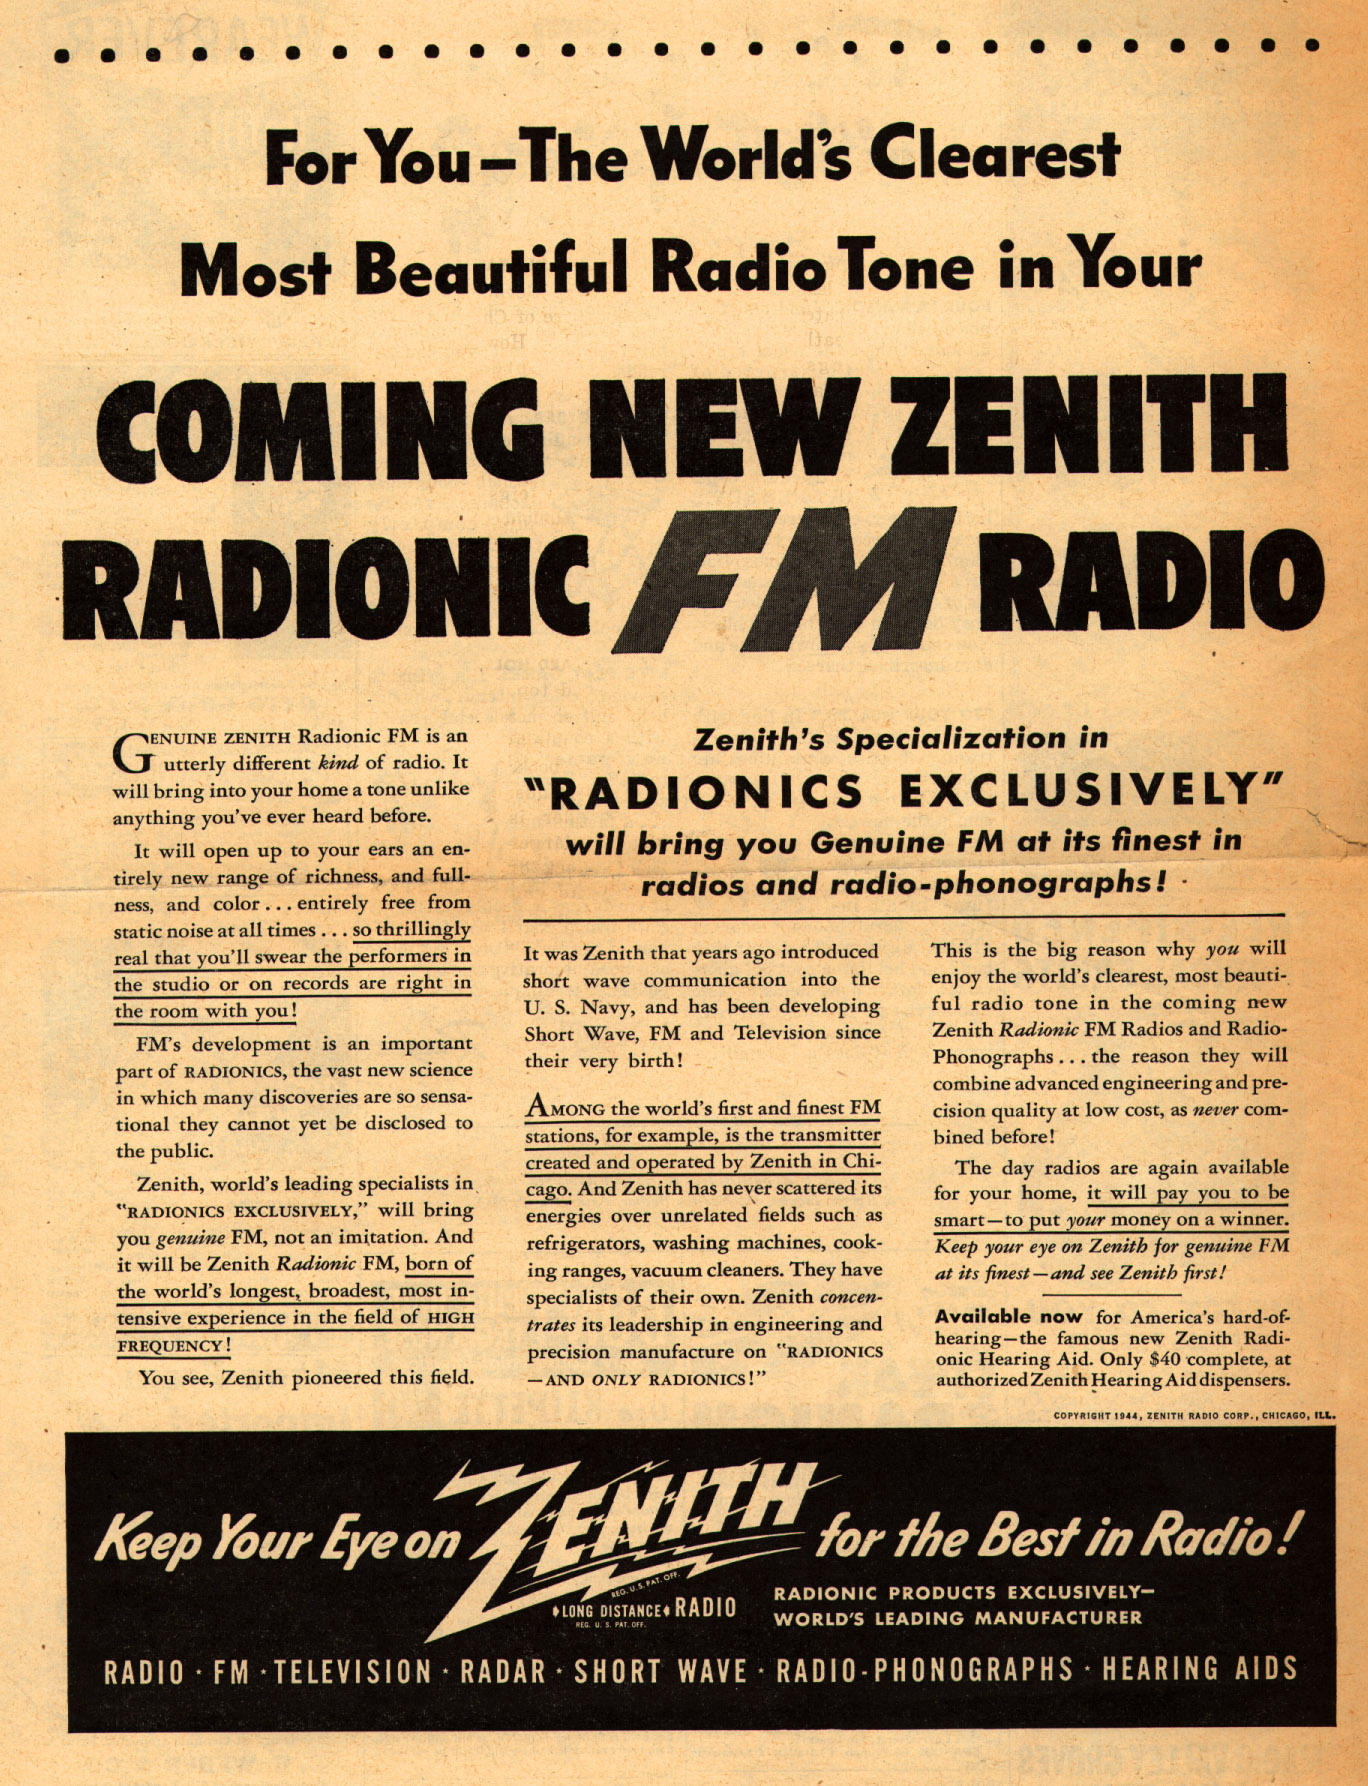 For_You-The_Worlds_Clearest_Most_Beautiful_Radio_Tone...